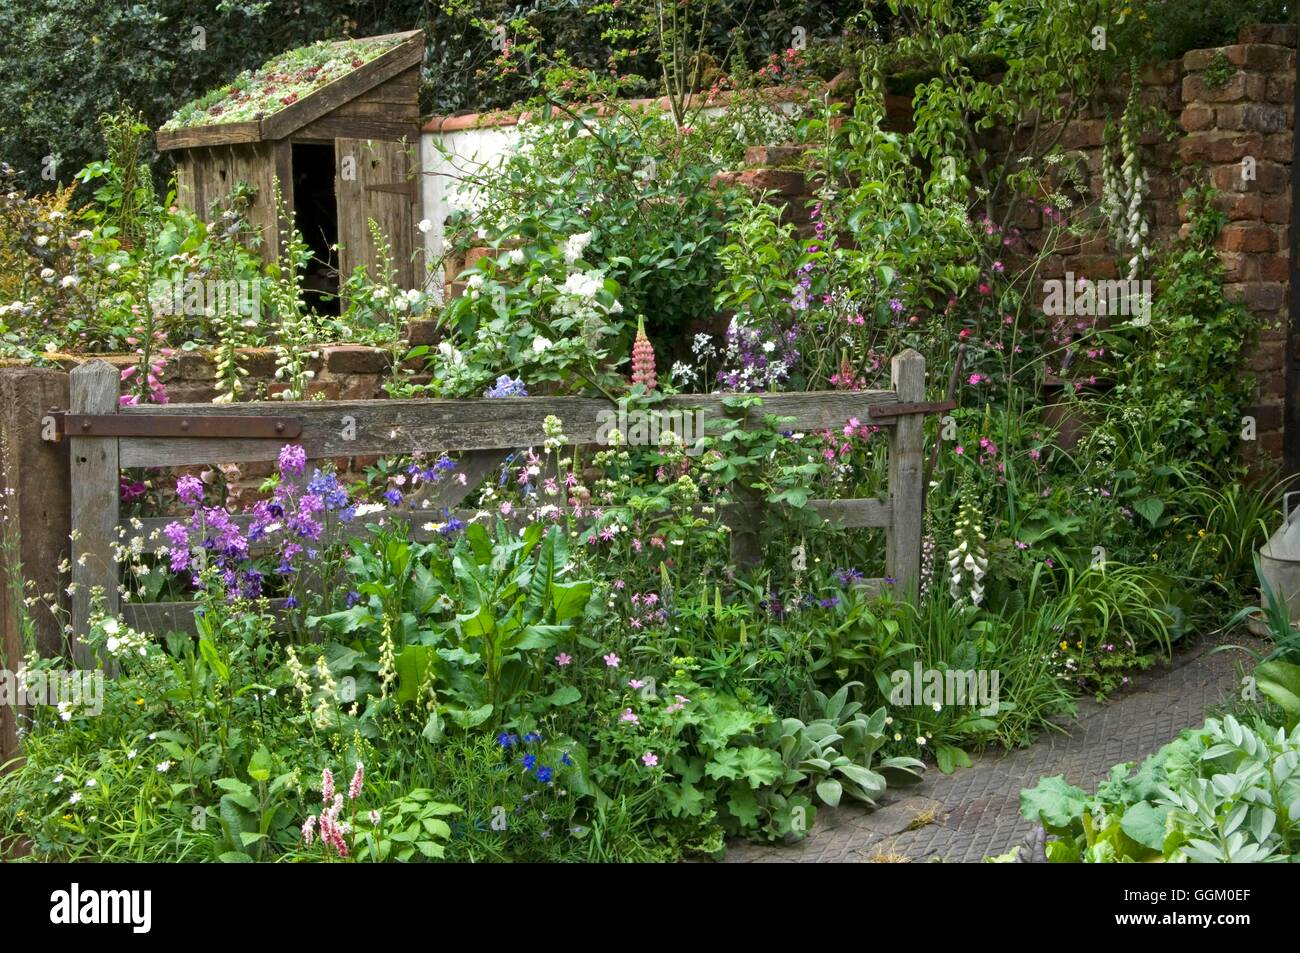 chelsea flower show 2007- part of 'the old gate' garden by adam